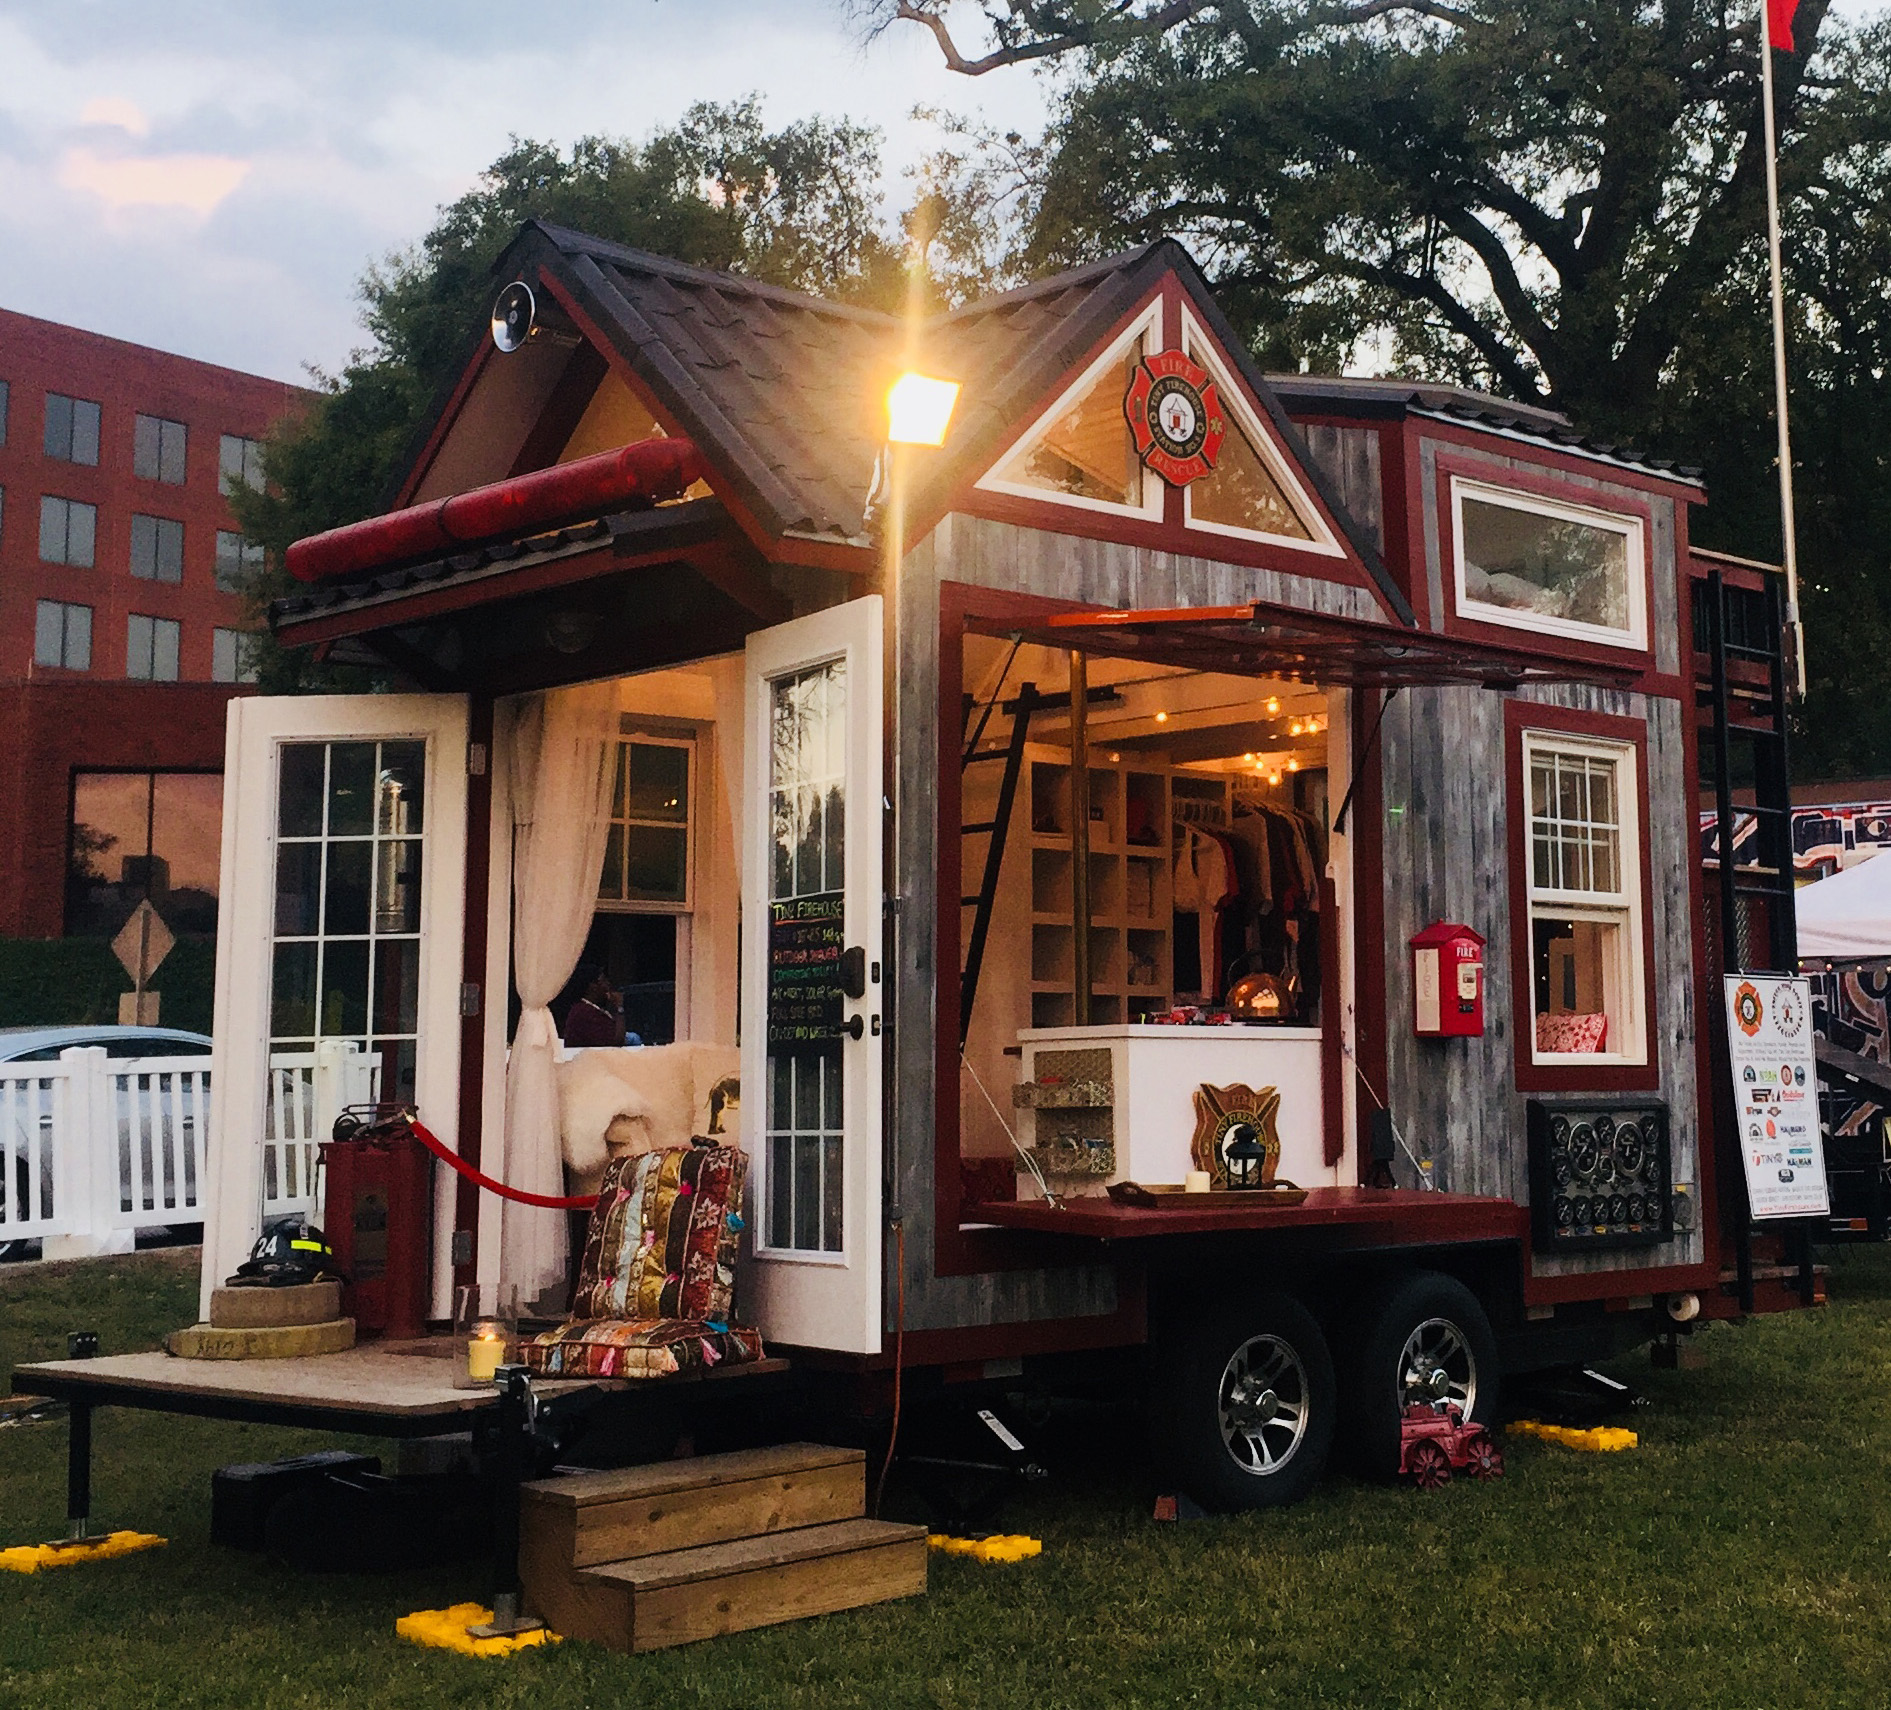 Tiny Fire House Made From Fire Truck Parts Used As Mobile